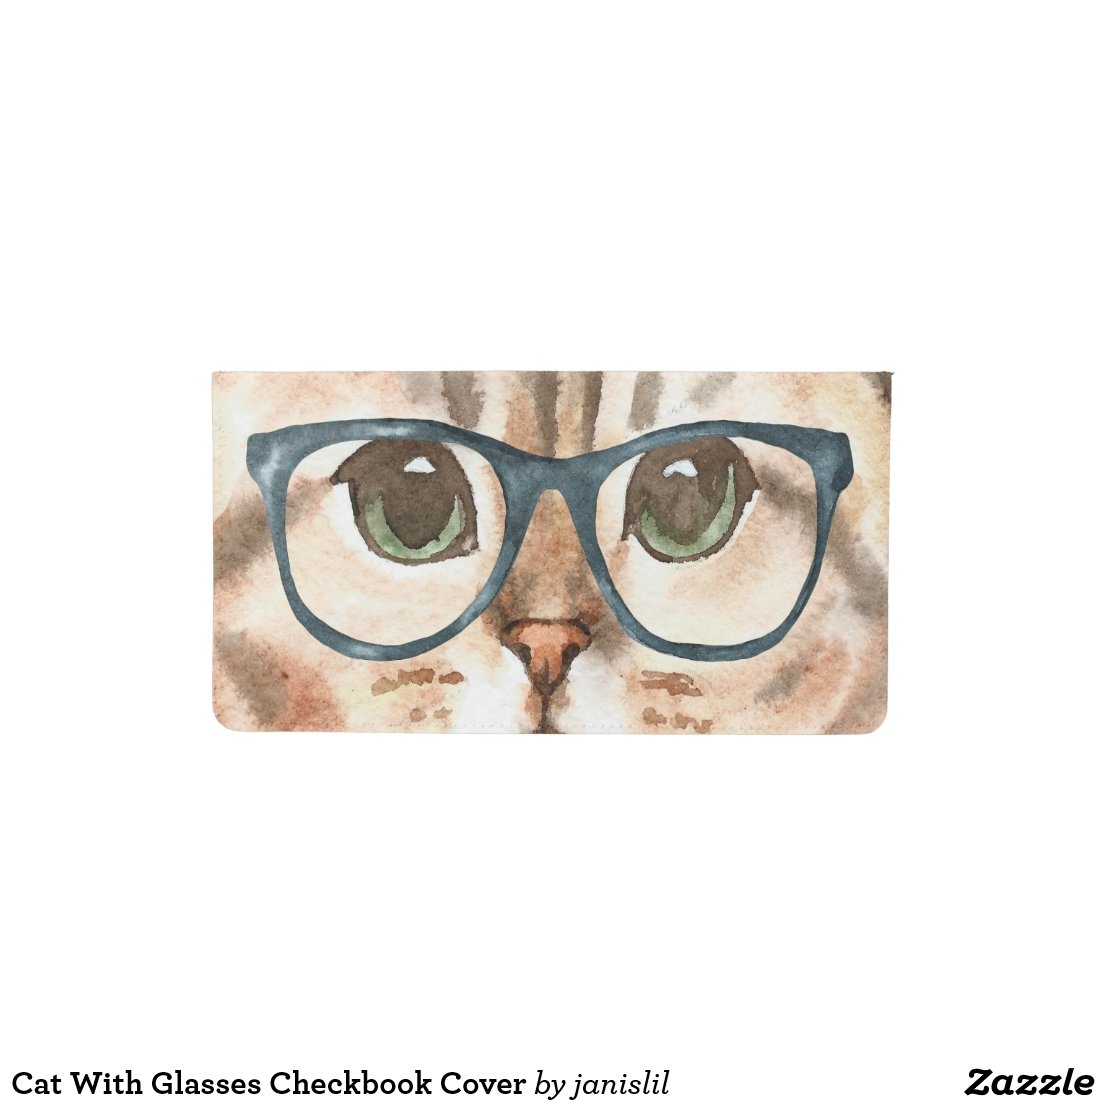 Cat With Glasses Checkbook Cover